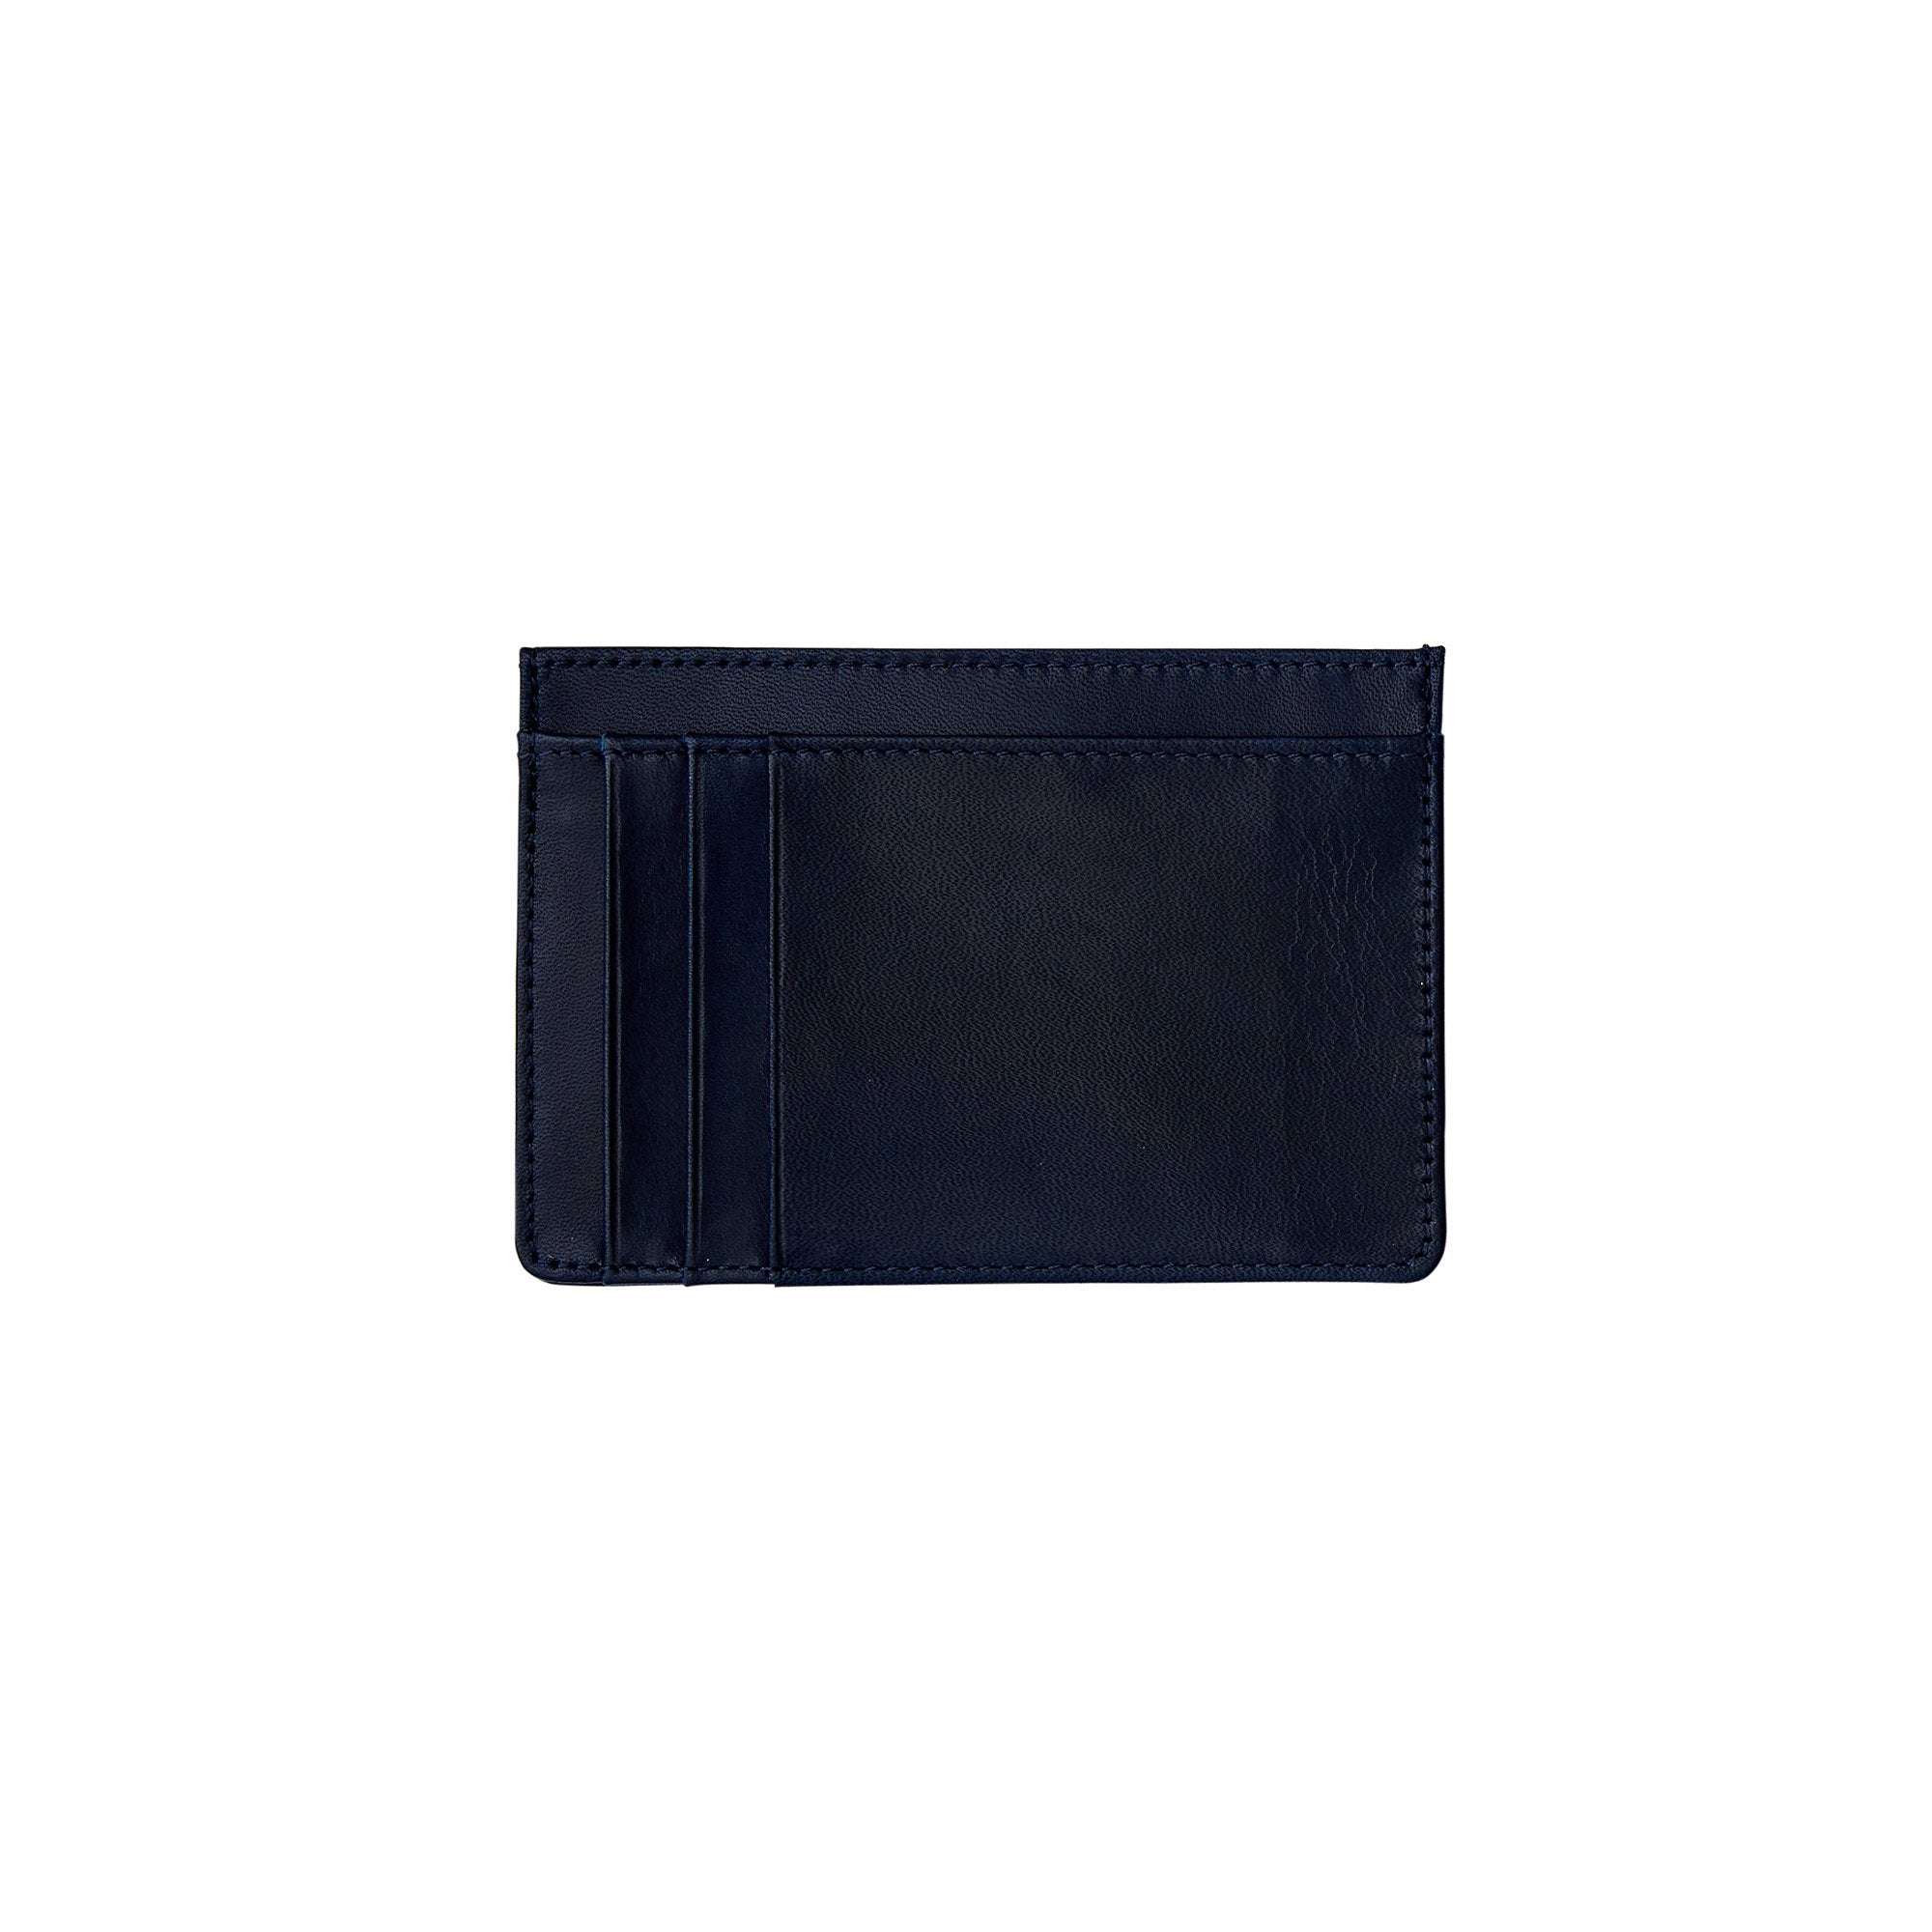 HENRY SARTORIAL MILA CARD HOLDER